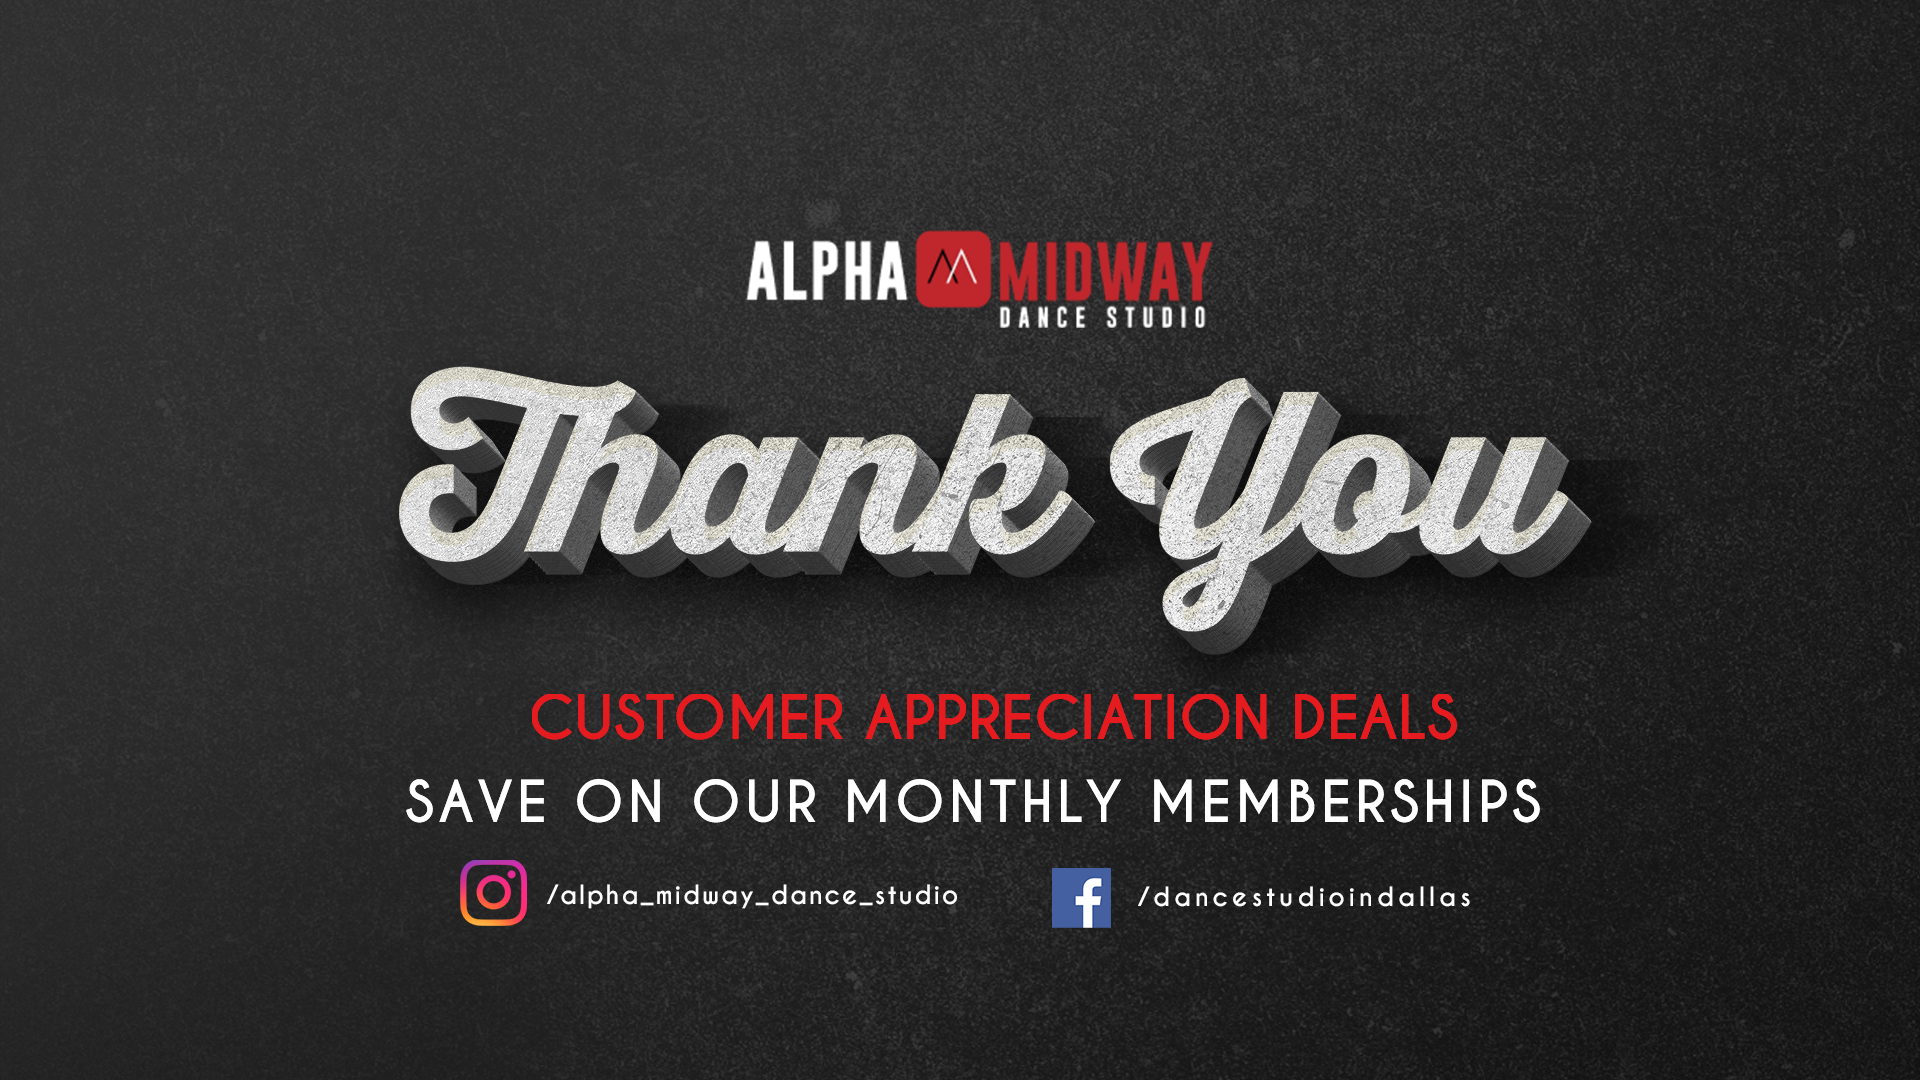 Customer Appreciation Deals